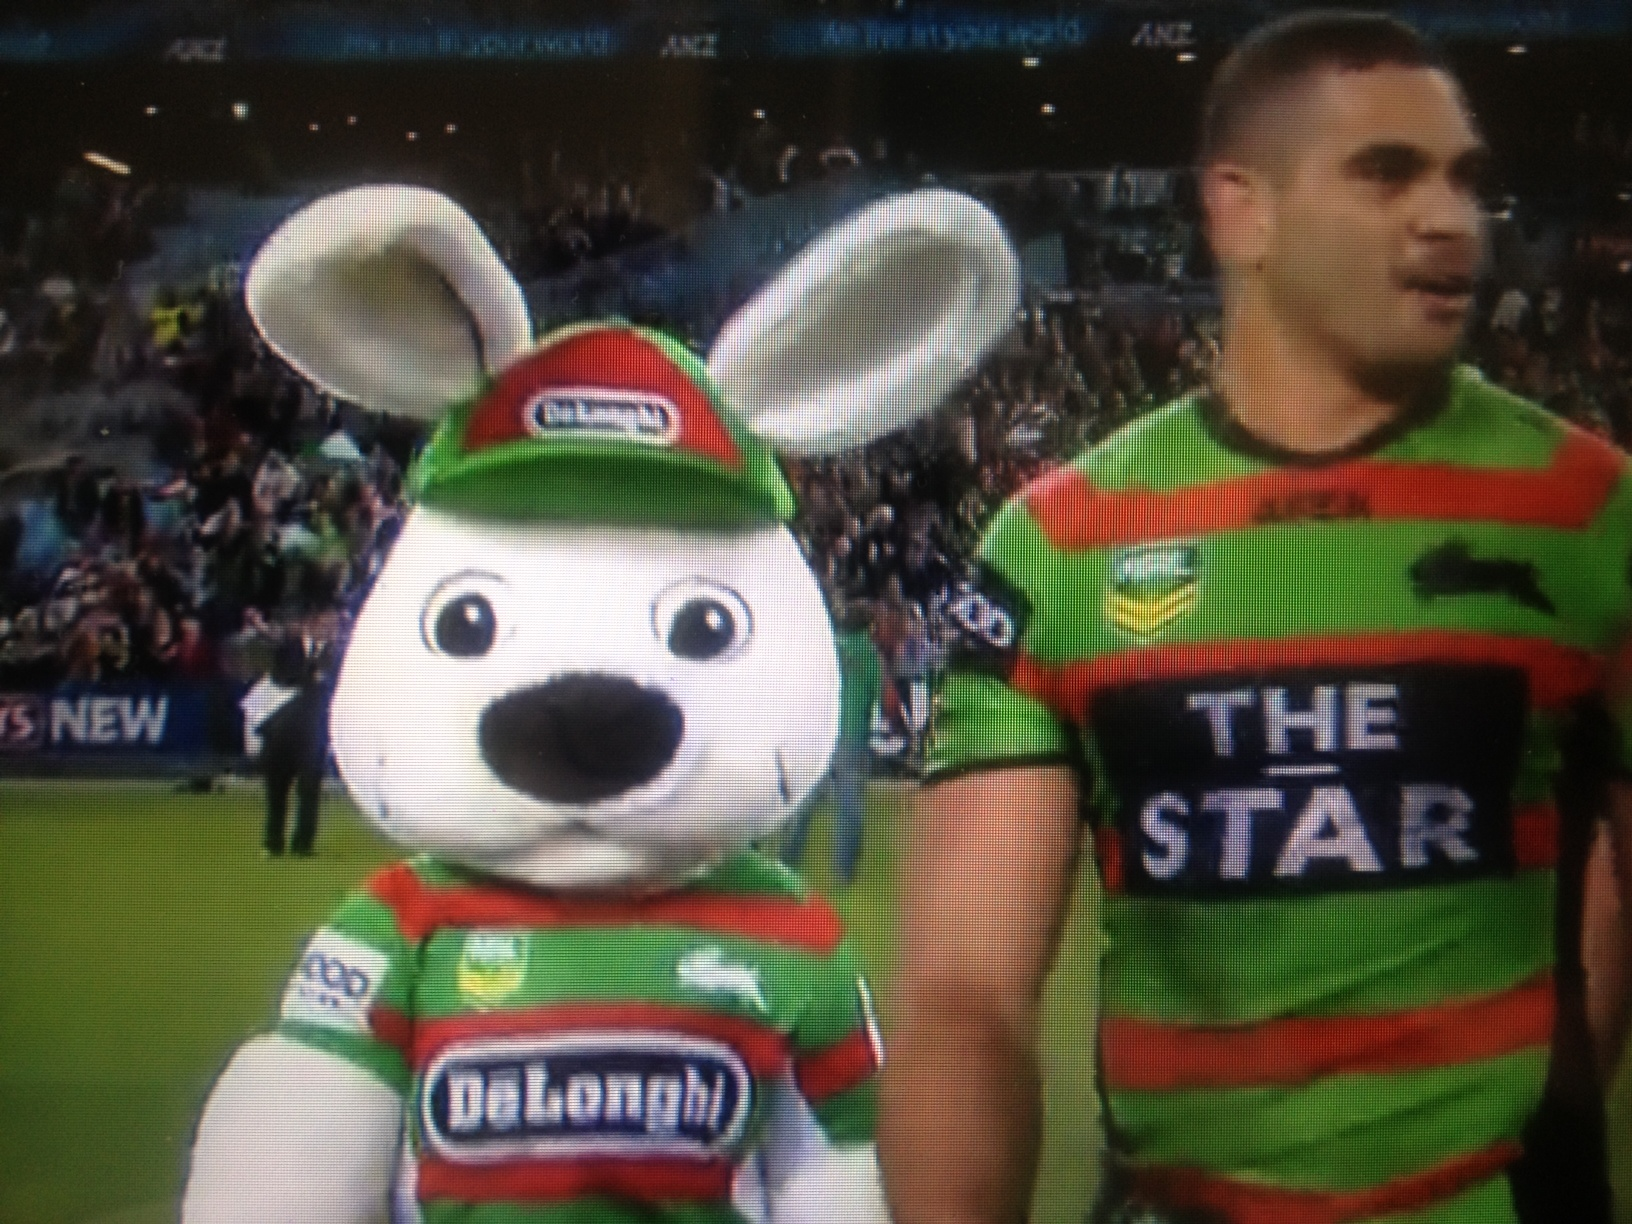 South Sydney Rabbitohs They Wear The Red And Green Traveling With Jared